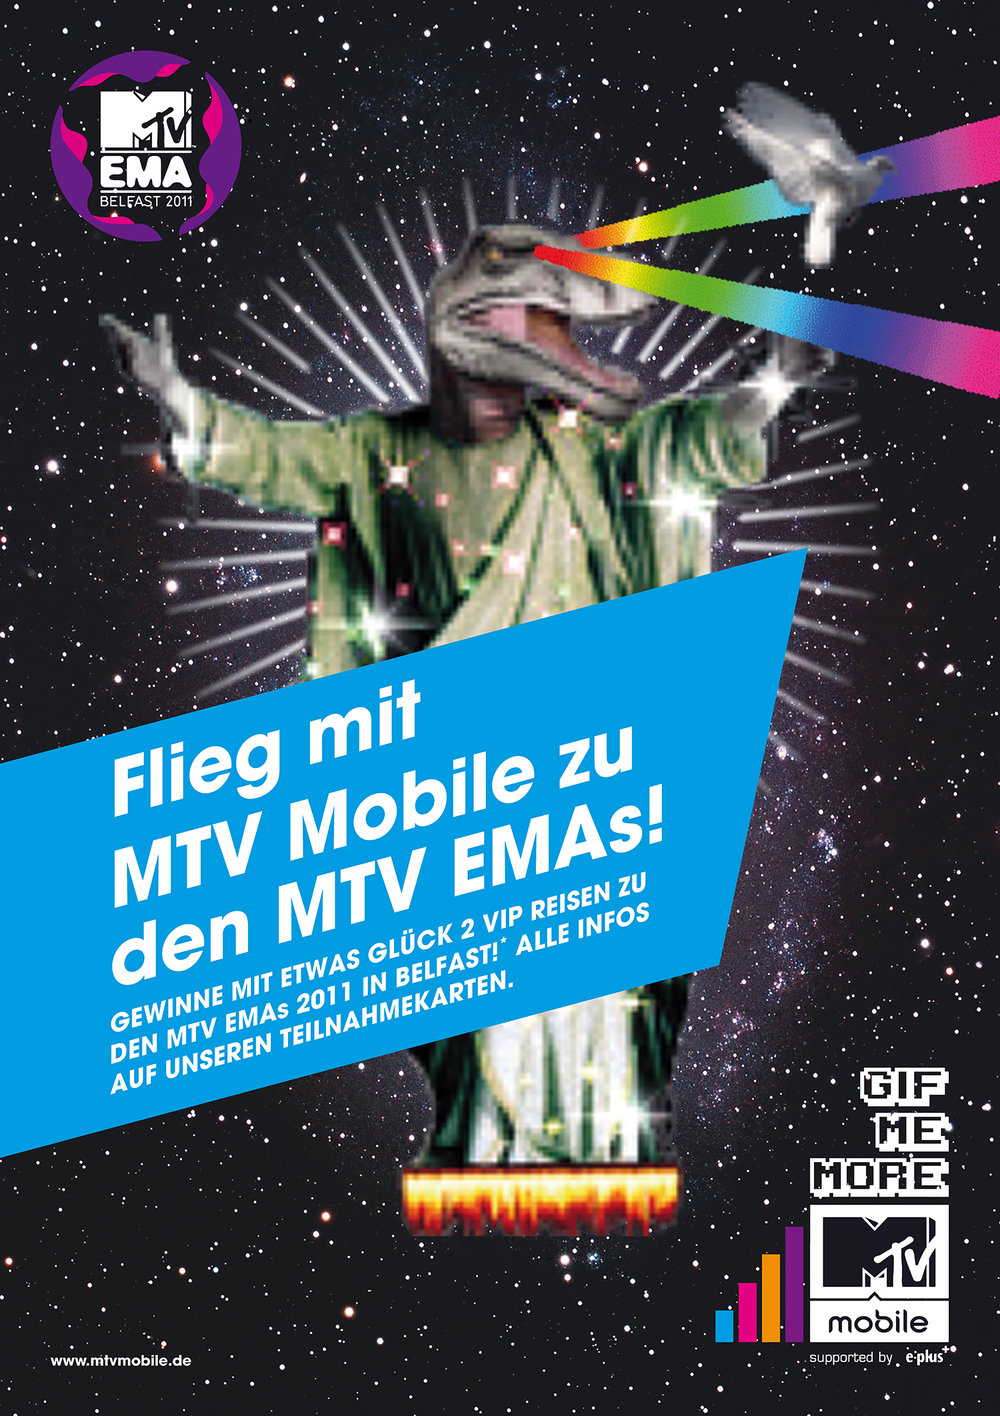 rbtq_Illustration_Seiser_Illustratorin_Hamburg_MTV_EMA_Print_Design_Plakat_02.jpg